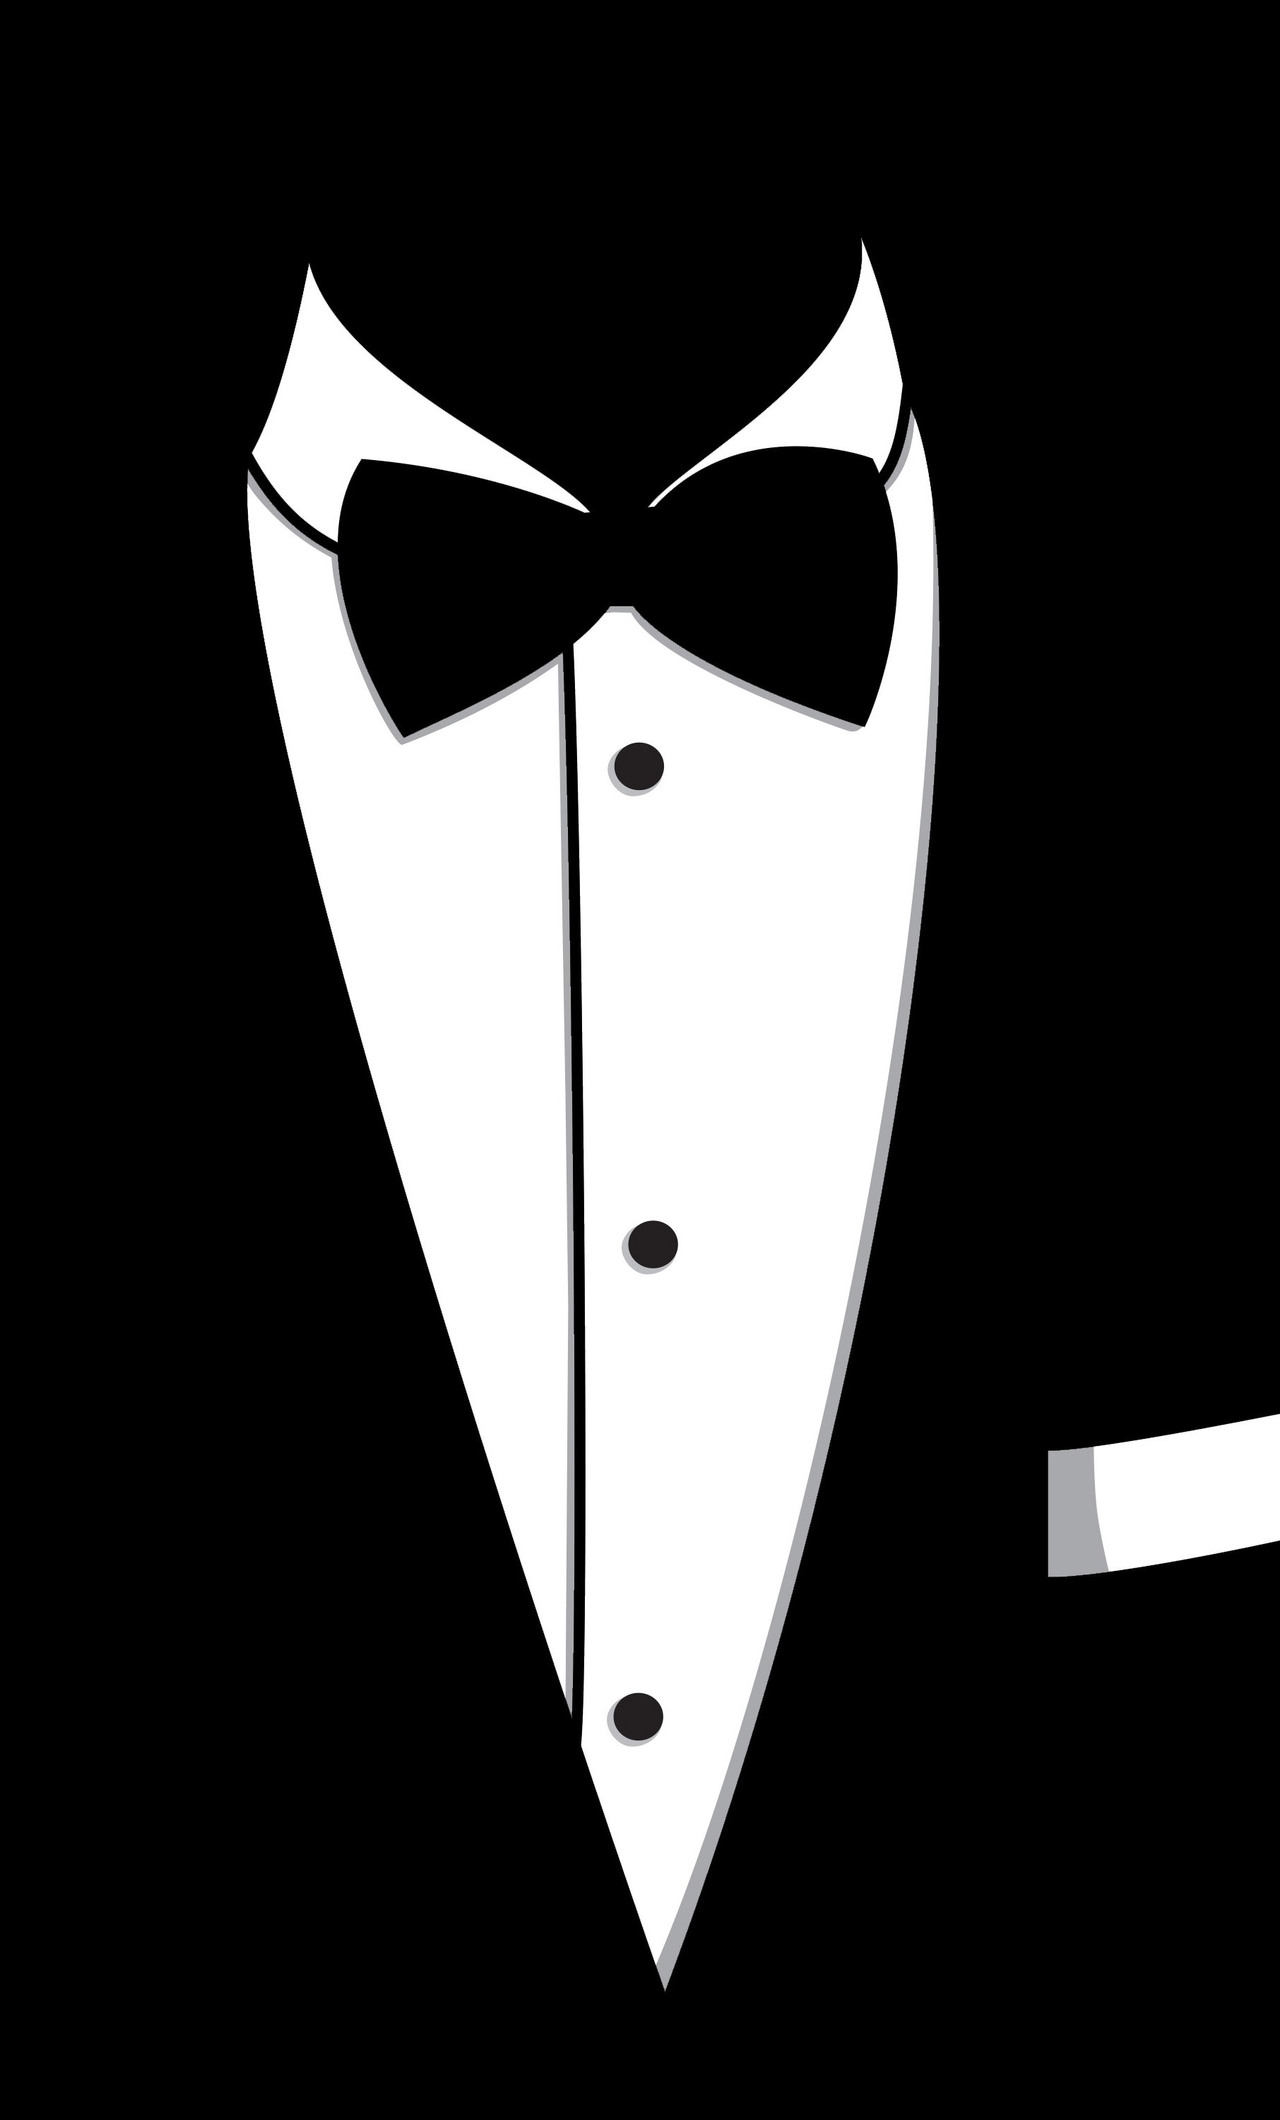 1280x2120 james bond 007 iphone 6 hd 4k wallpapers - James bond images hd ...